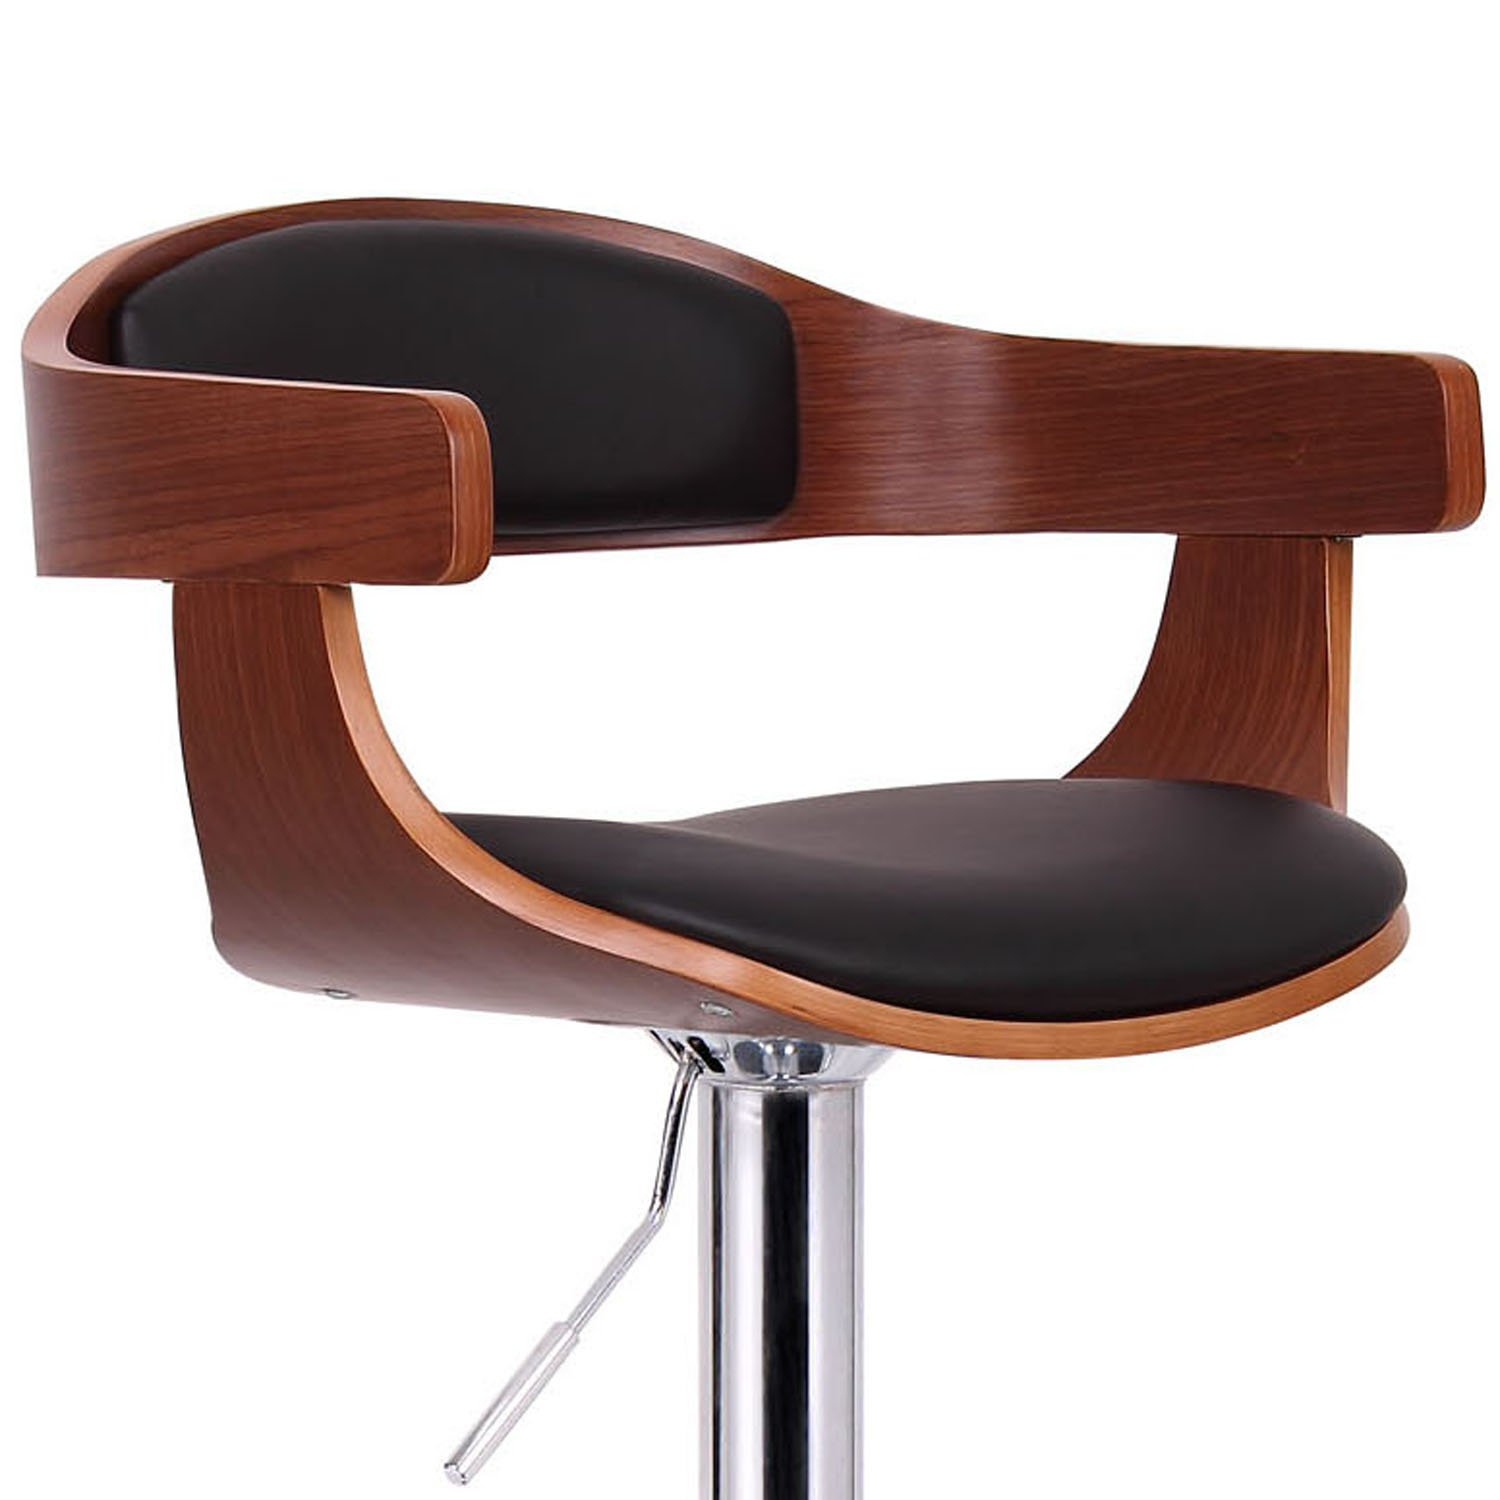 Amazon.com Baxton Studio Garr Walnut and Black Modern Bar Stool Kitchen u0026 Dining  sc 1 st  Amazon.com & Amazon.com: Baxton Studio Garr Walnut and Black Modern Bar Stool ... islam-shia.org